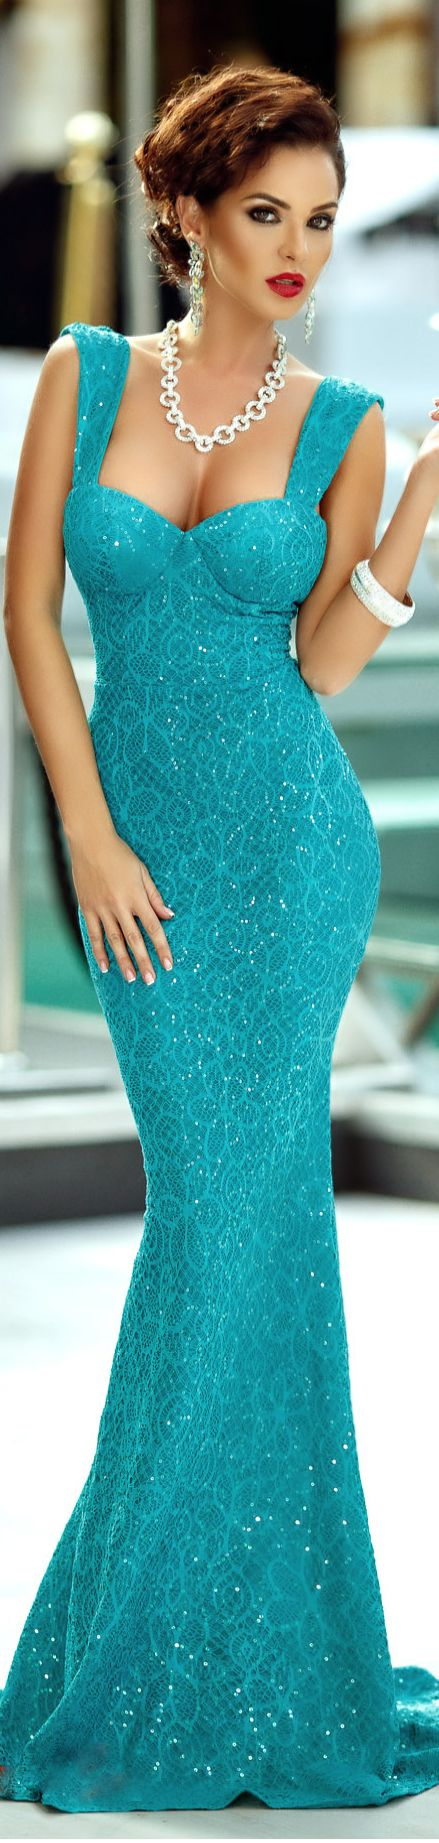 dress with sequined lace turquoise -tweddingdress.com #FashionSerendipity #fashion #style